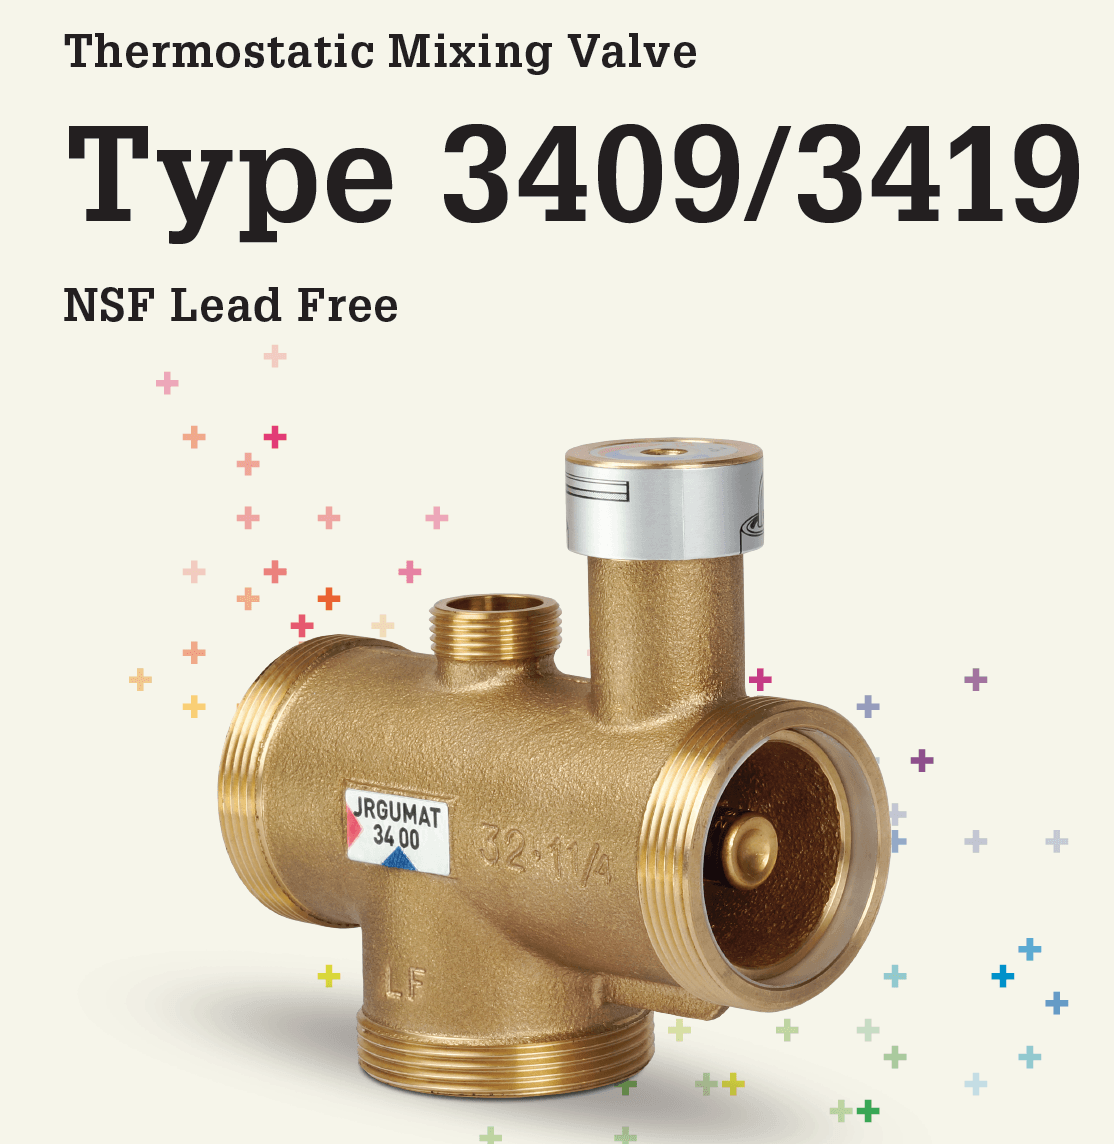 Thermostatic Mixing Valve Type 3409 3419